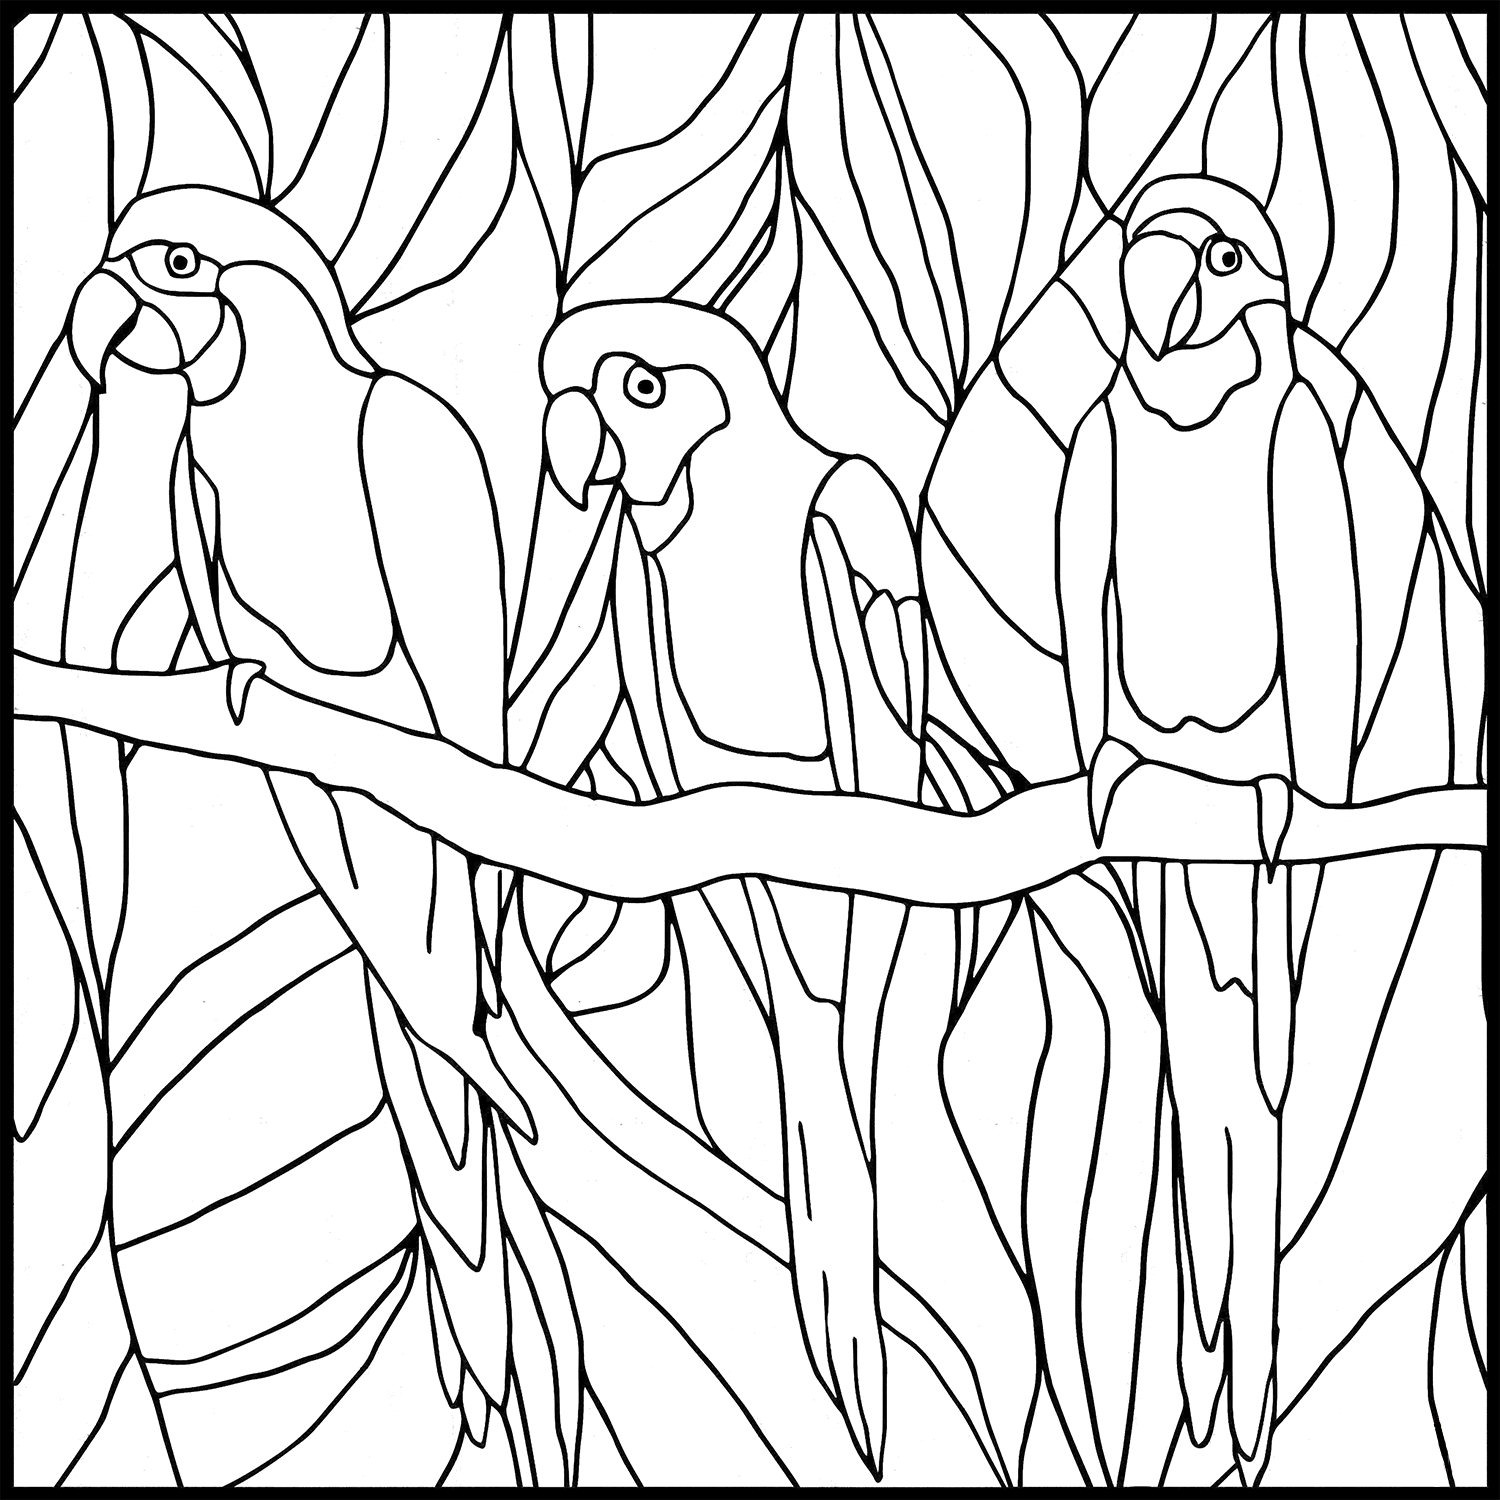 STAINED GLASS PARROT WINDOW Clipart Coloring Pages for Kids Adults Art Activities Line Art